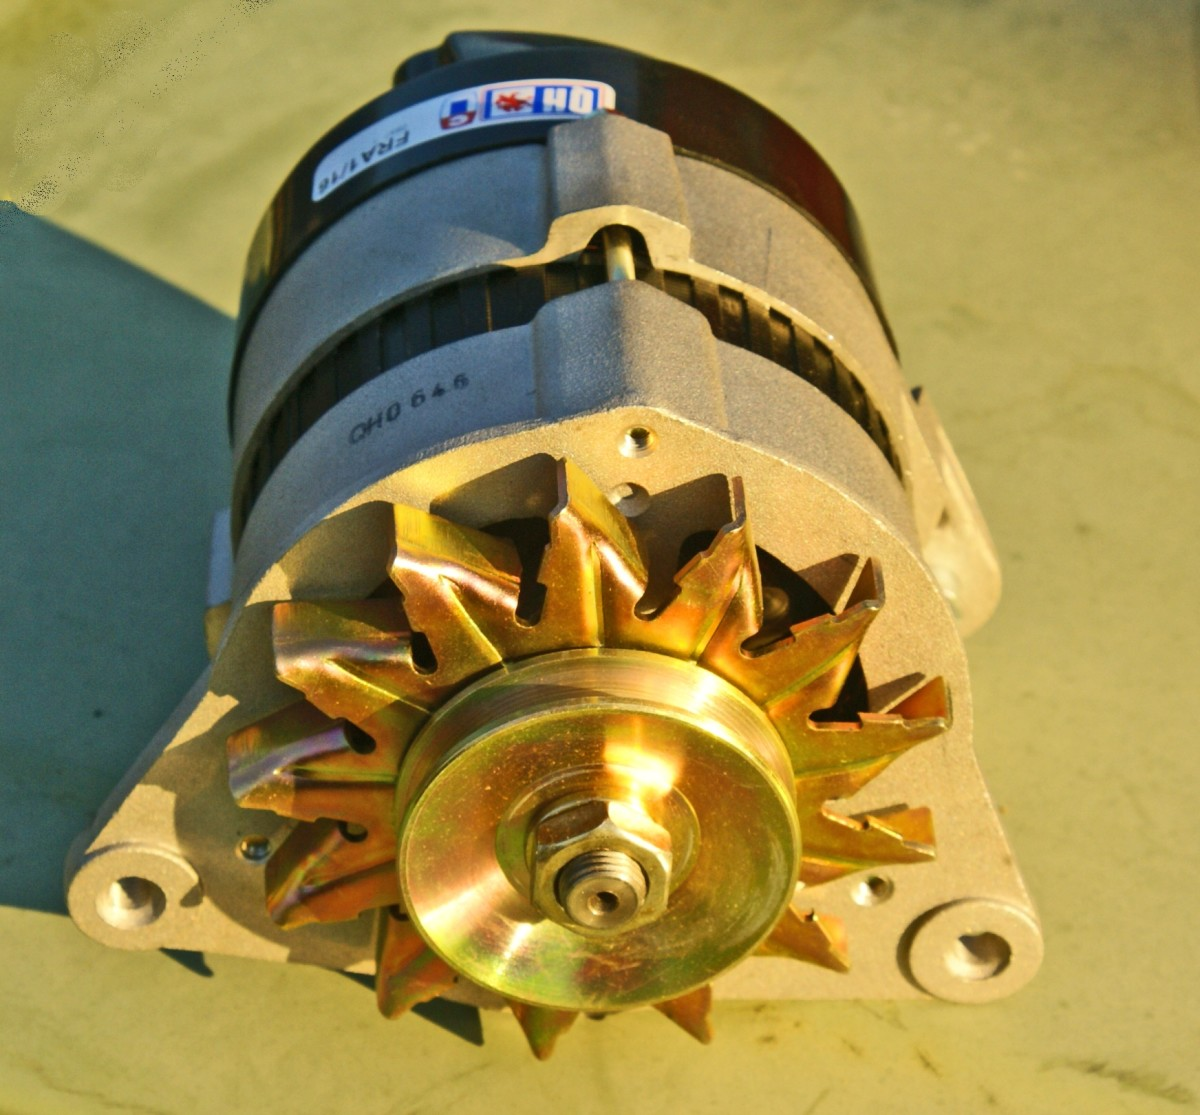 Professionally refurbished or rebuilt alternators are often just as good as brand new ones and can cost as little as half the price.